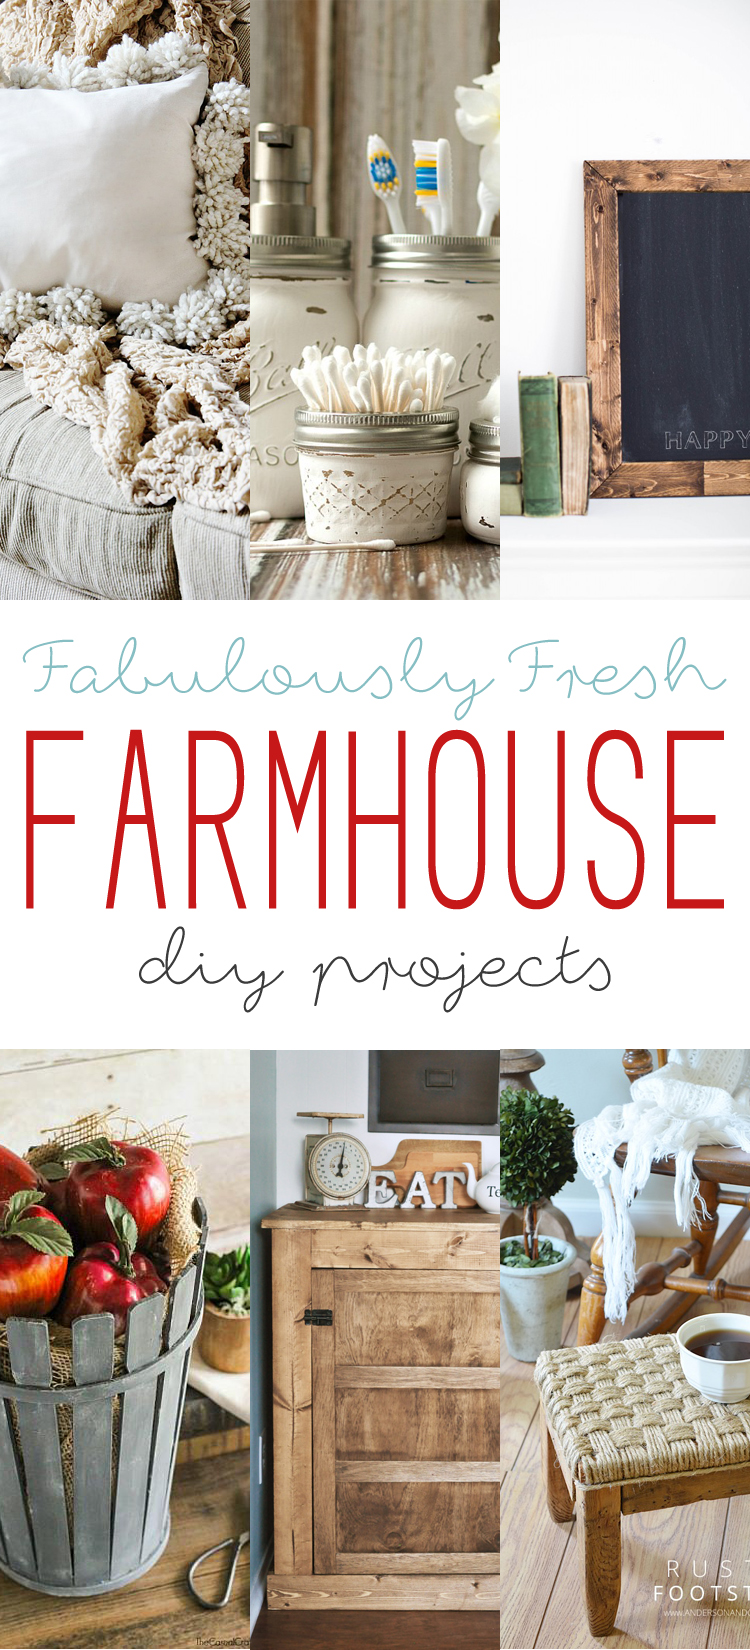 Fabulously fresh farmhouse diy projects the cottage market for Farmhouse cottage decor